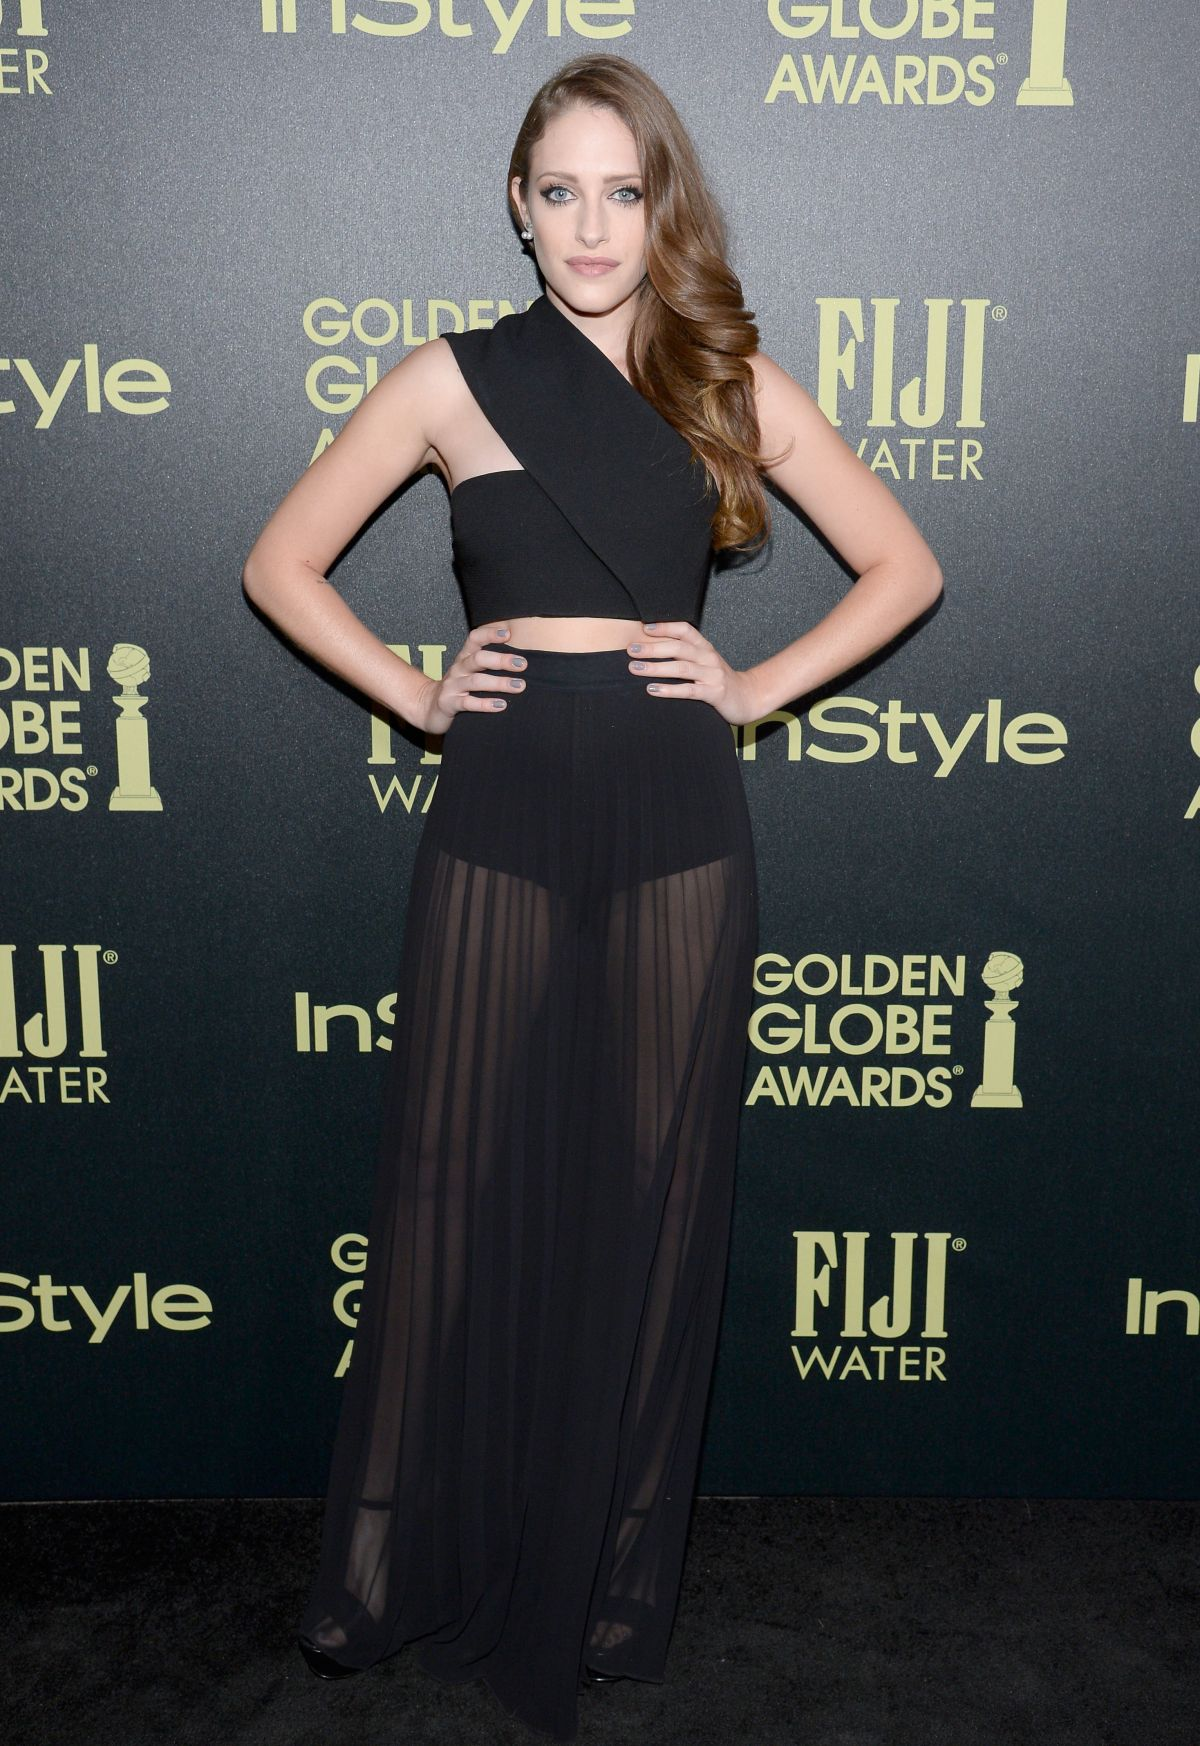 CARLY CHAIKIN at hfpa and Instyle Celebrate 2016 Golden Globe Award Season in West Hollywood 11/17/2015